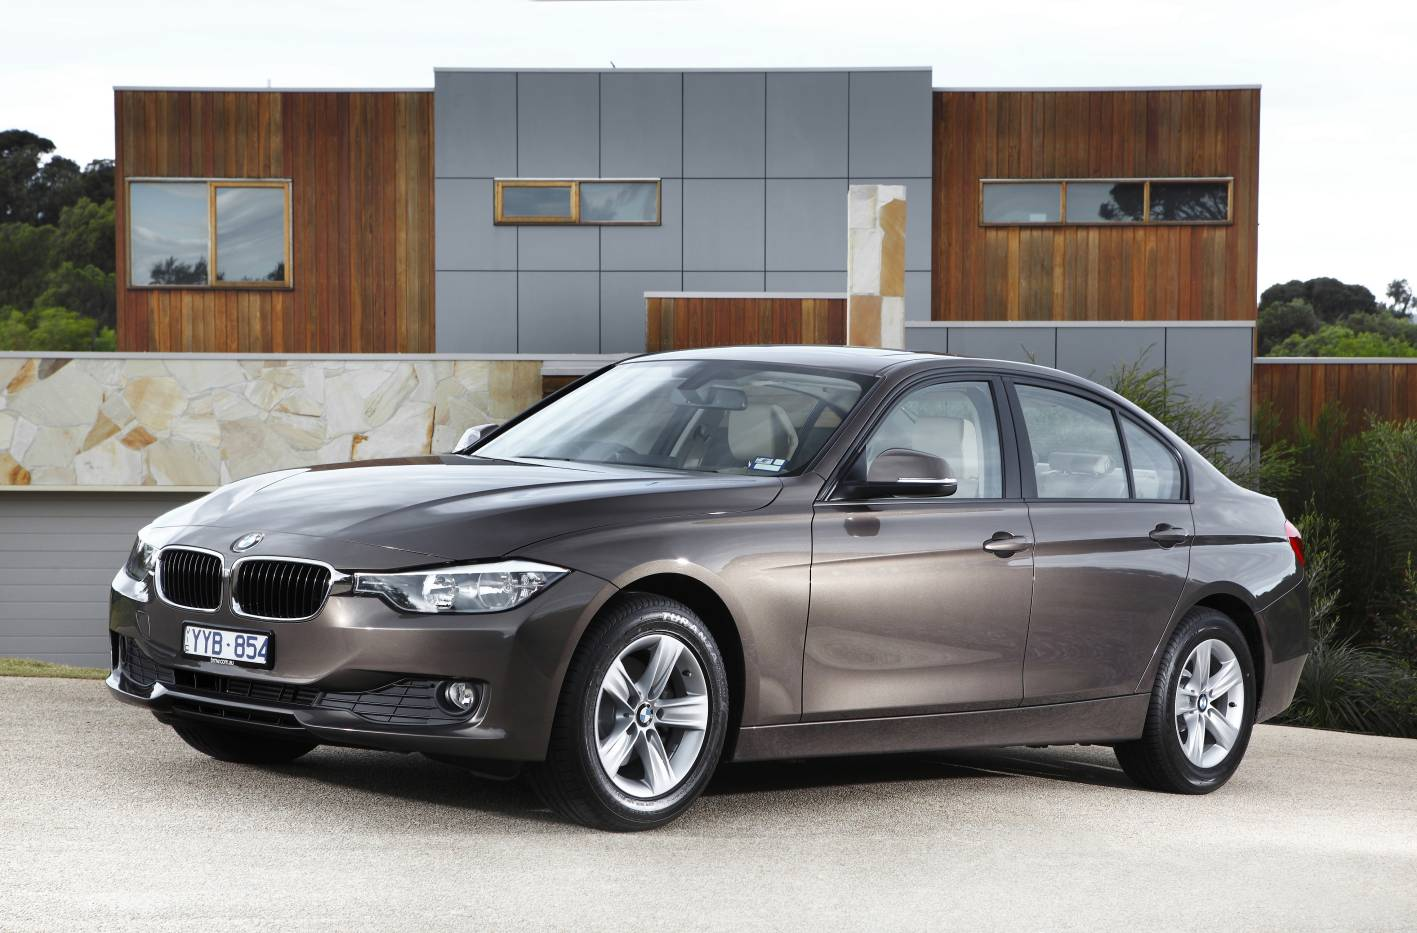 bmw cars news bmw adds 316i sedan to lineup. Black Bedroom Furniture Sets. Home Design Ideas